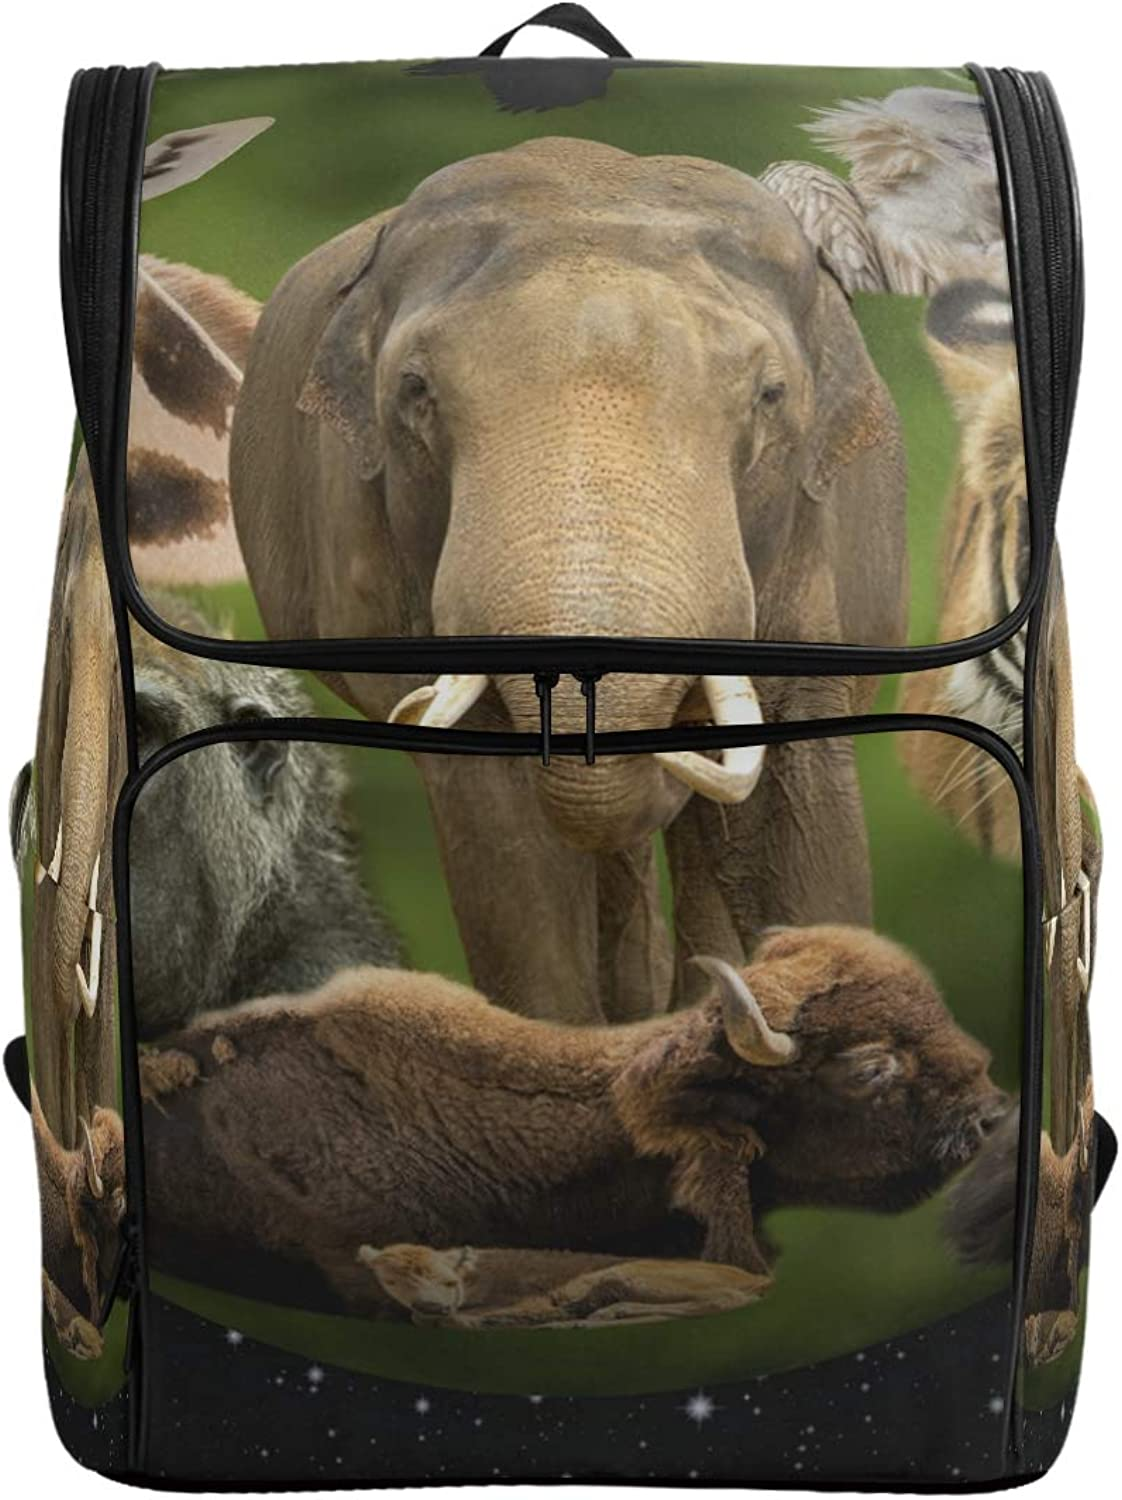 FANTAZIO Animal Planet Laptop Outdoor Backpack Travel Hiking Camping Rucksack Pack, Casual Large College School Daypack